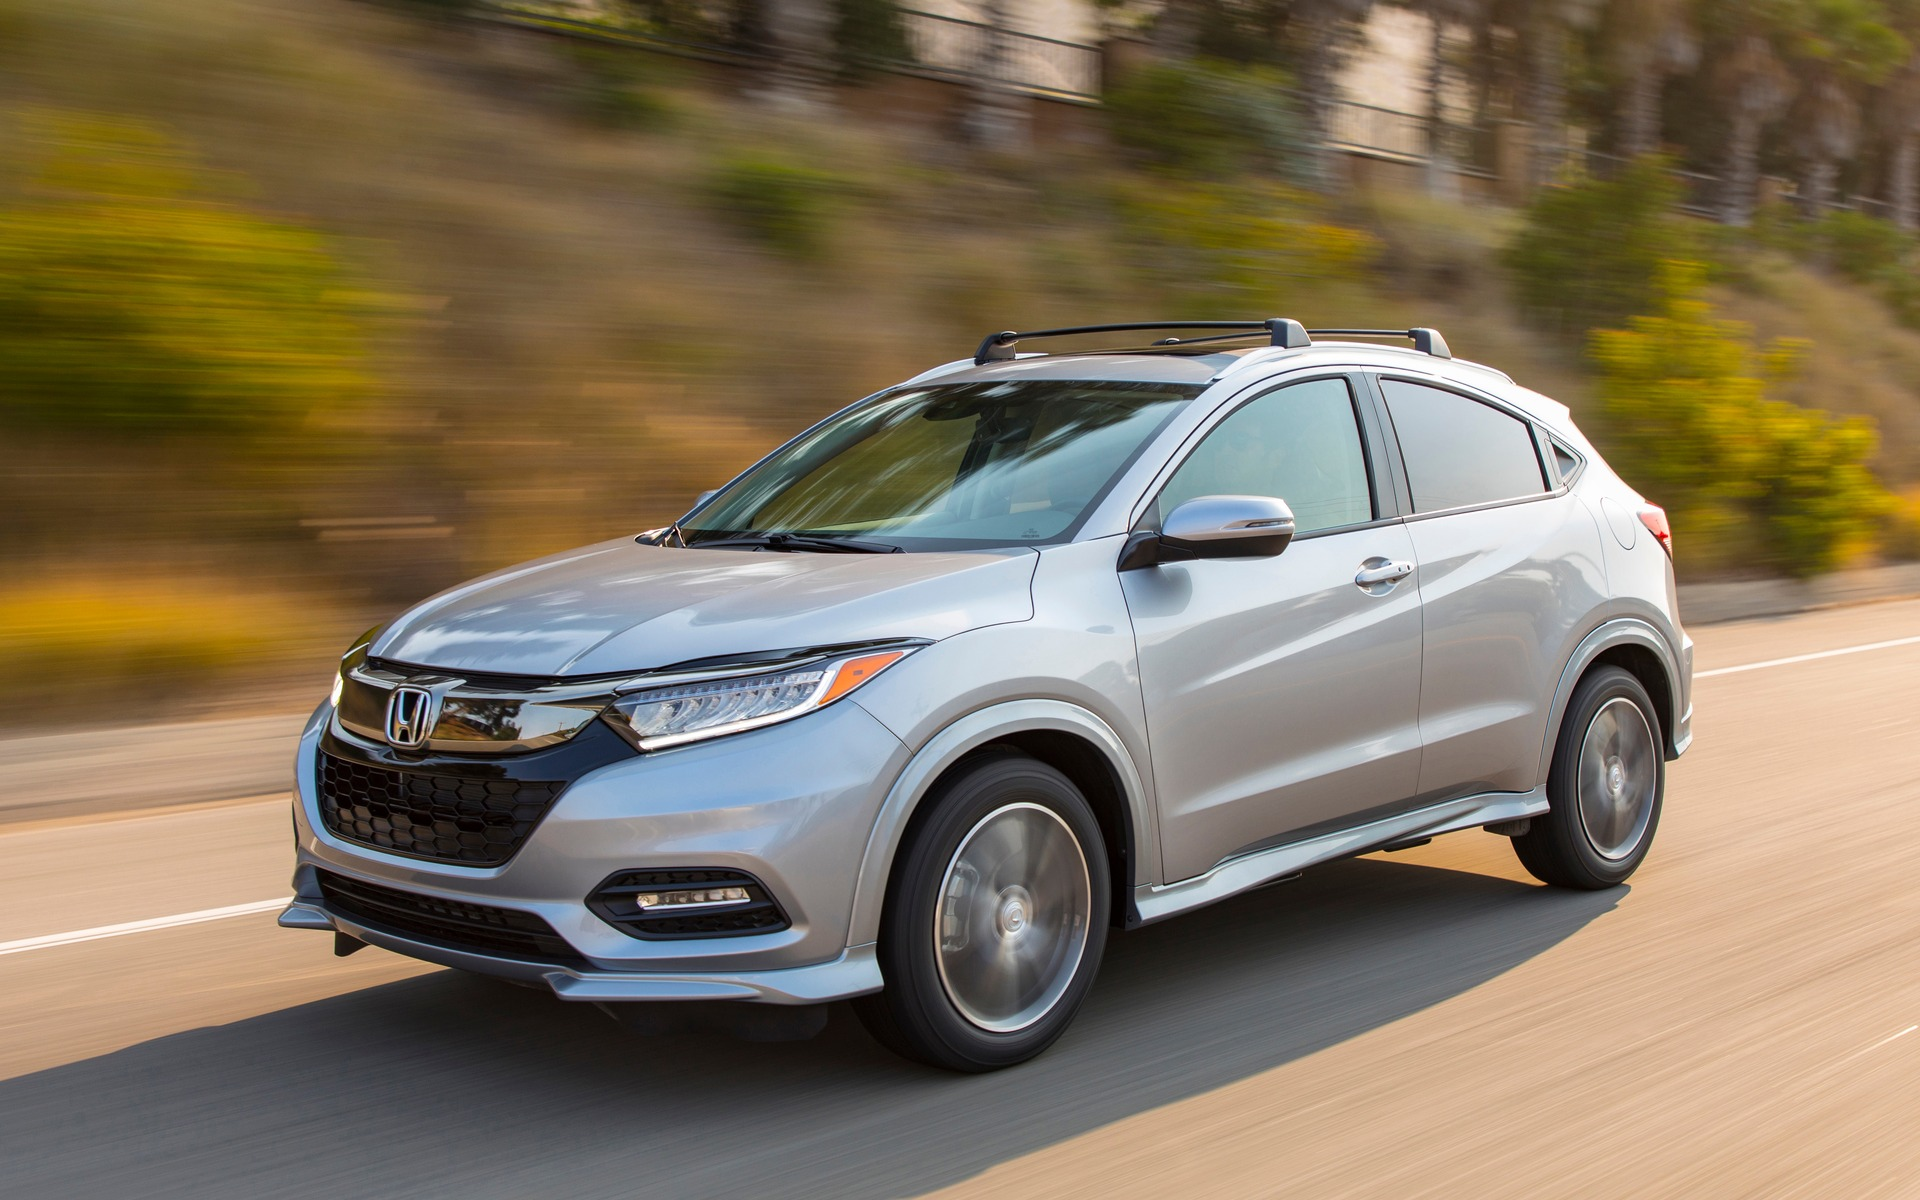 Five Things to Know About the 2019 Honda HR-V - The Car Guide